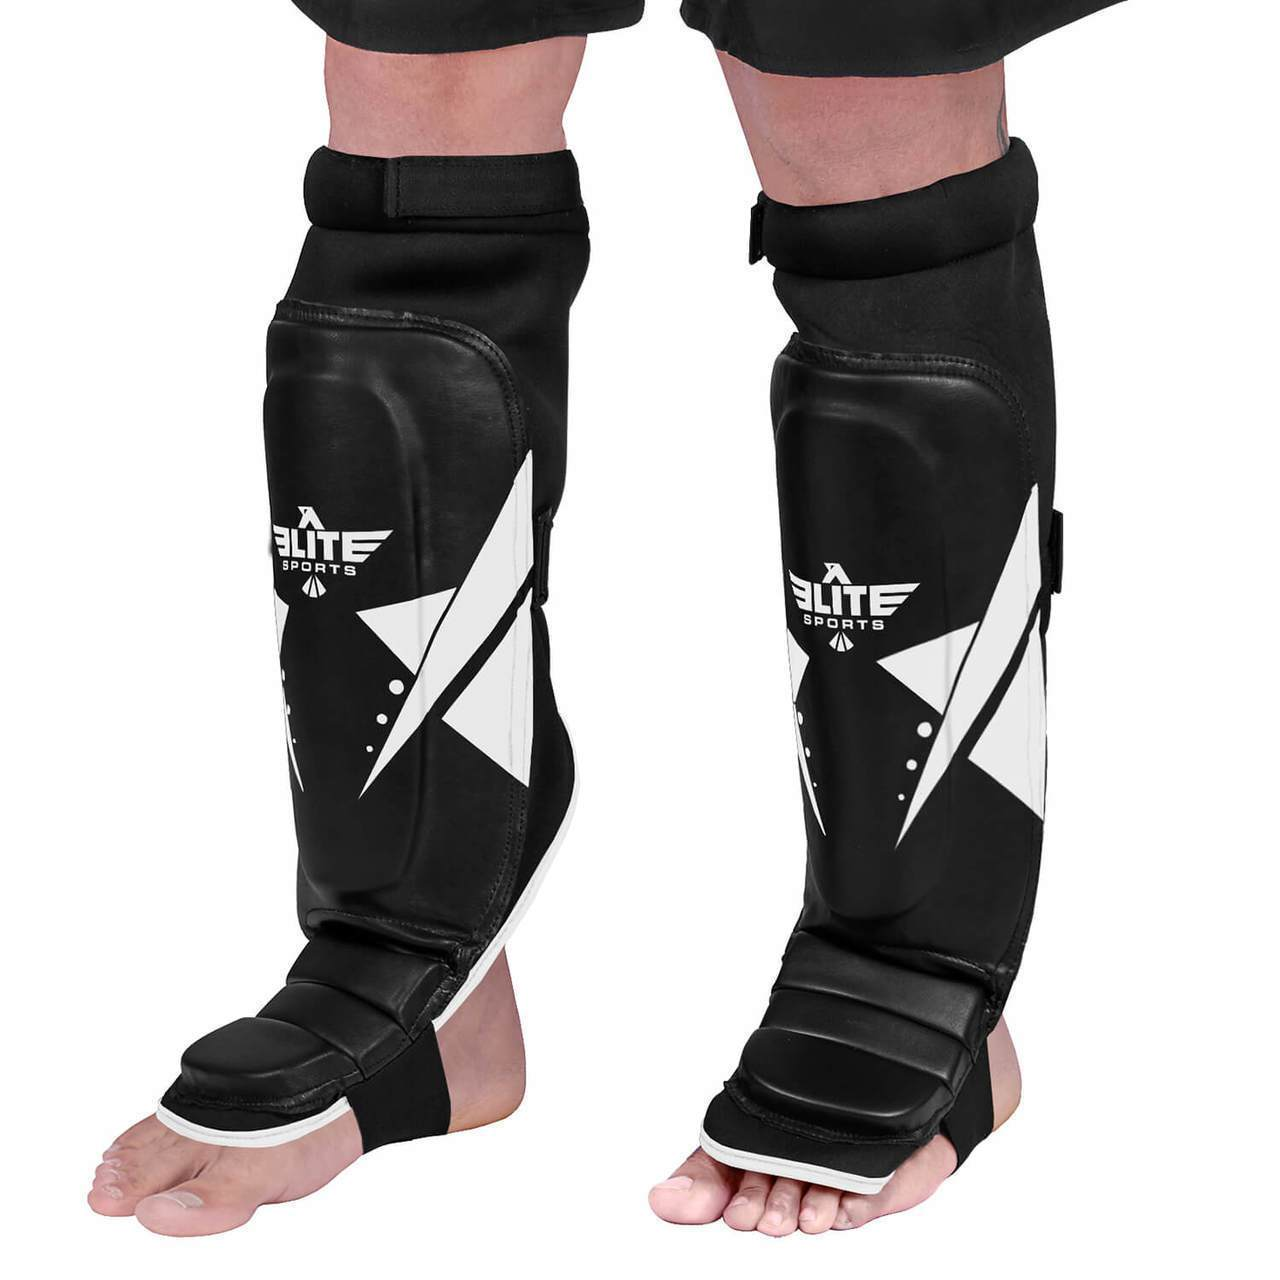 Load image into Gallery viewer, Elite Sports Star Series Black/White Muay thai Shin guards